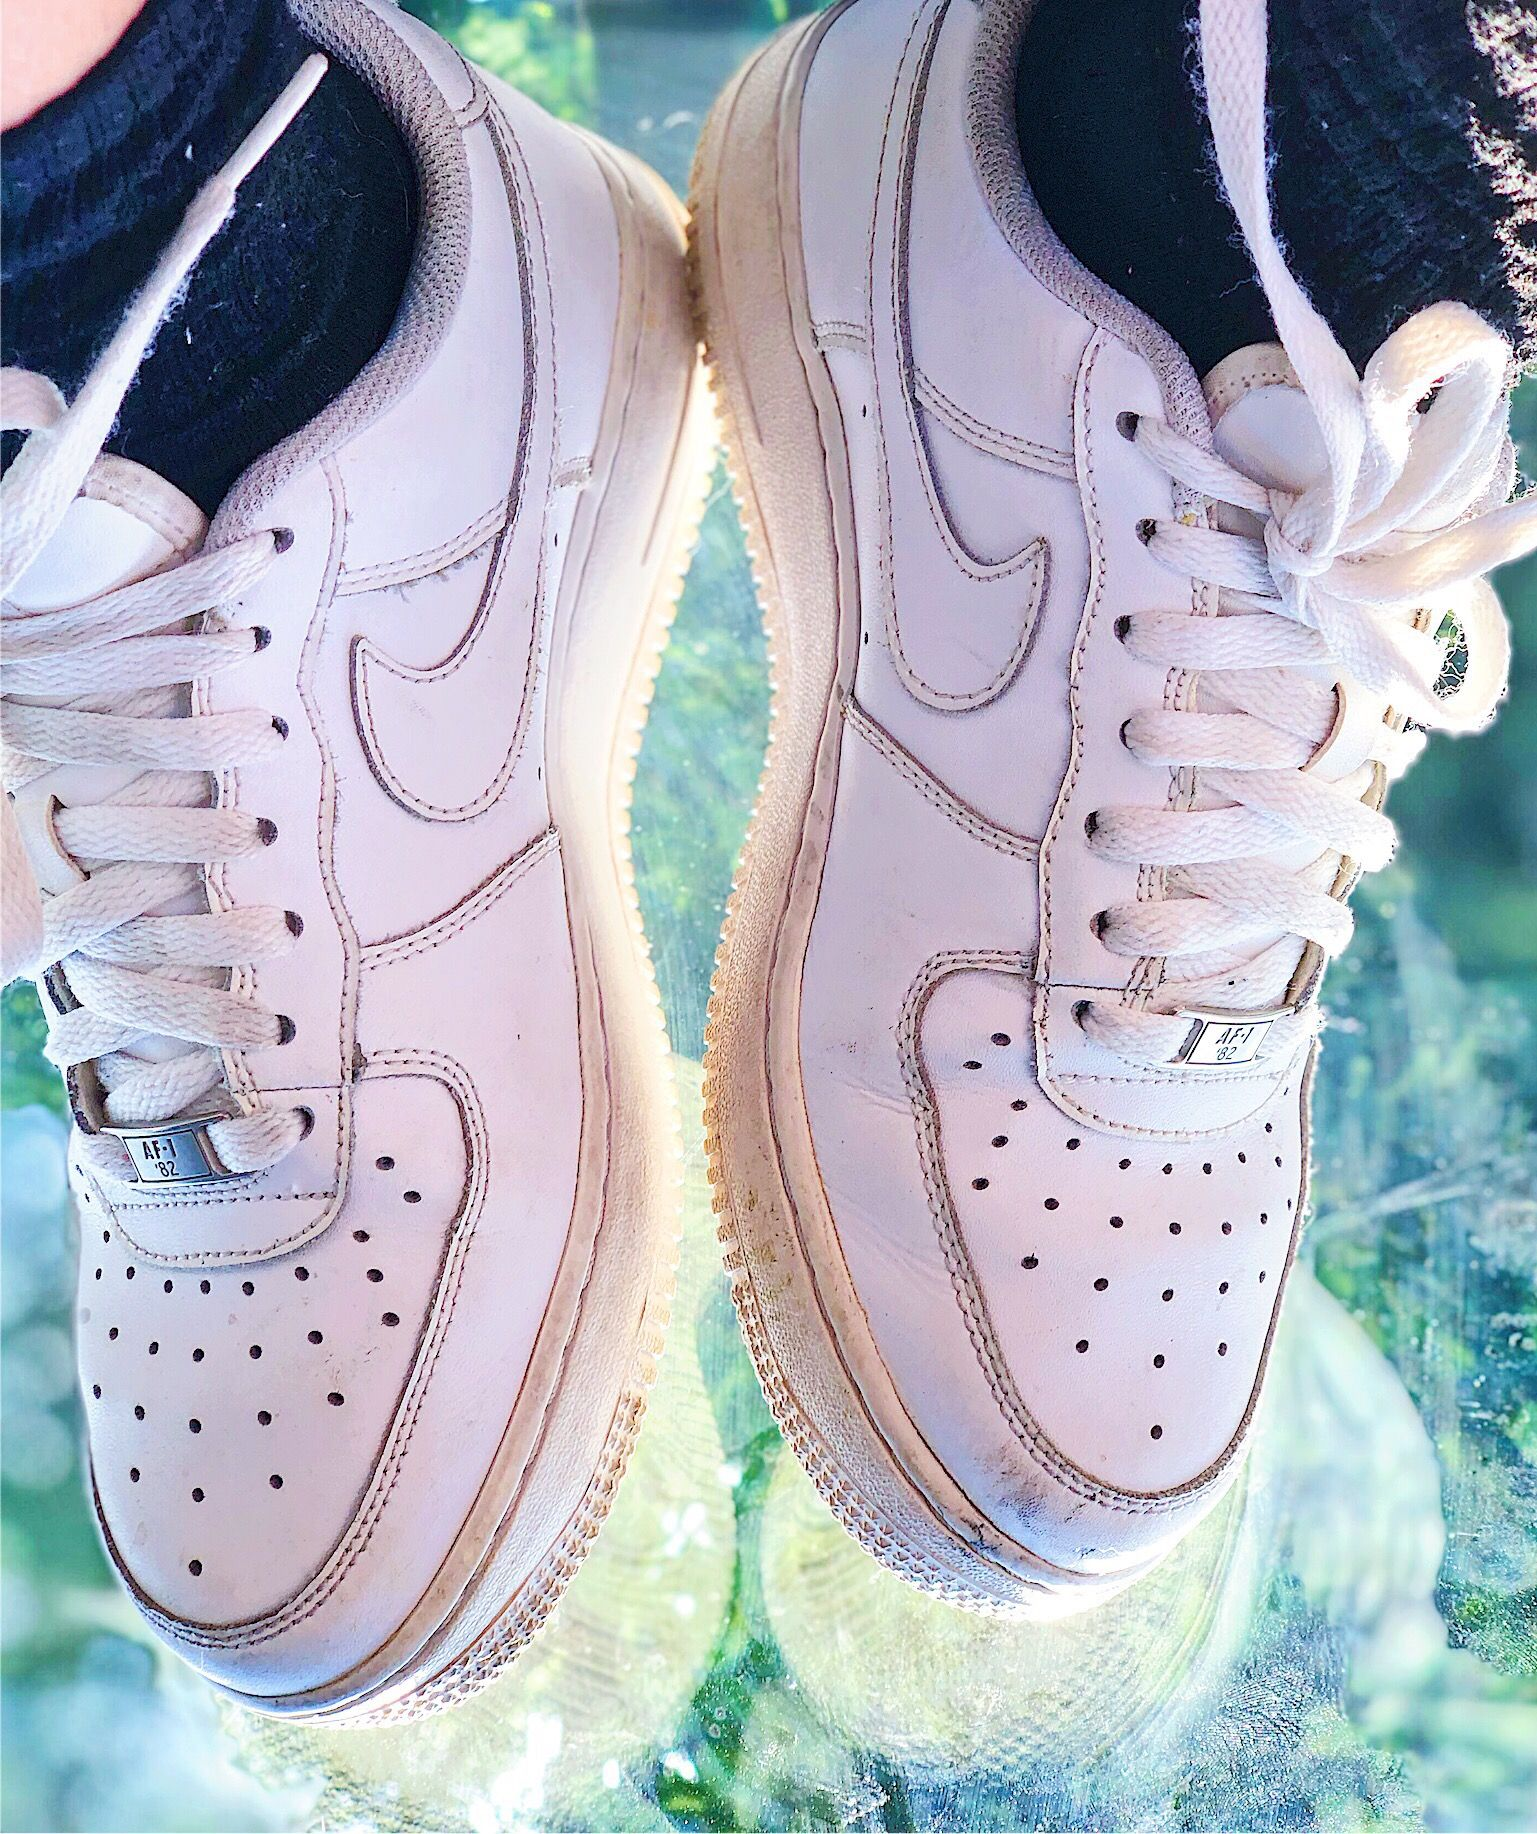 white nike air force ones vintage shoes aesthetic 90s old vsco ... b671dad80